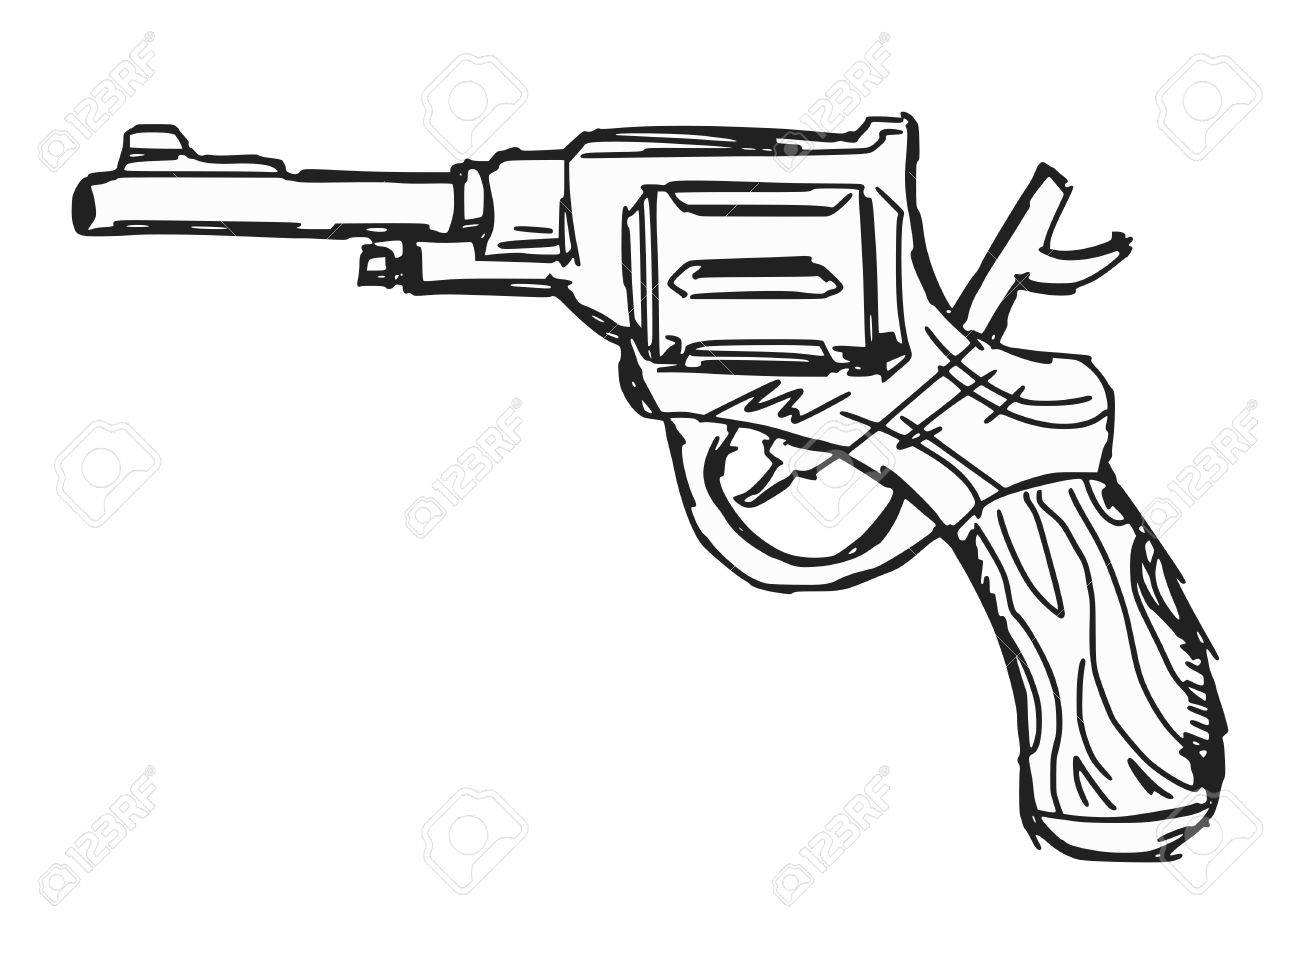 1300x974 Hand Drawn, Sketch, Doodle Illustration Of Revolver Royalty Free